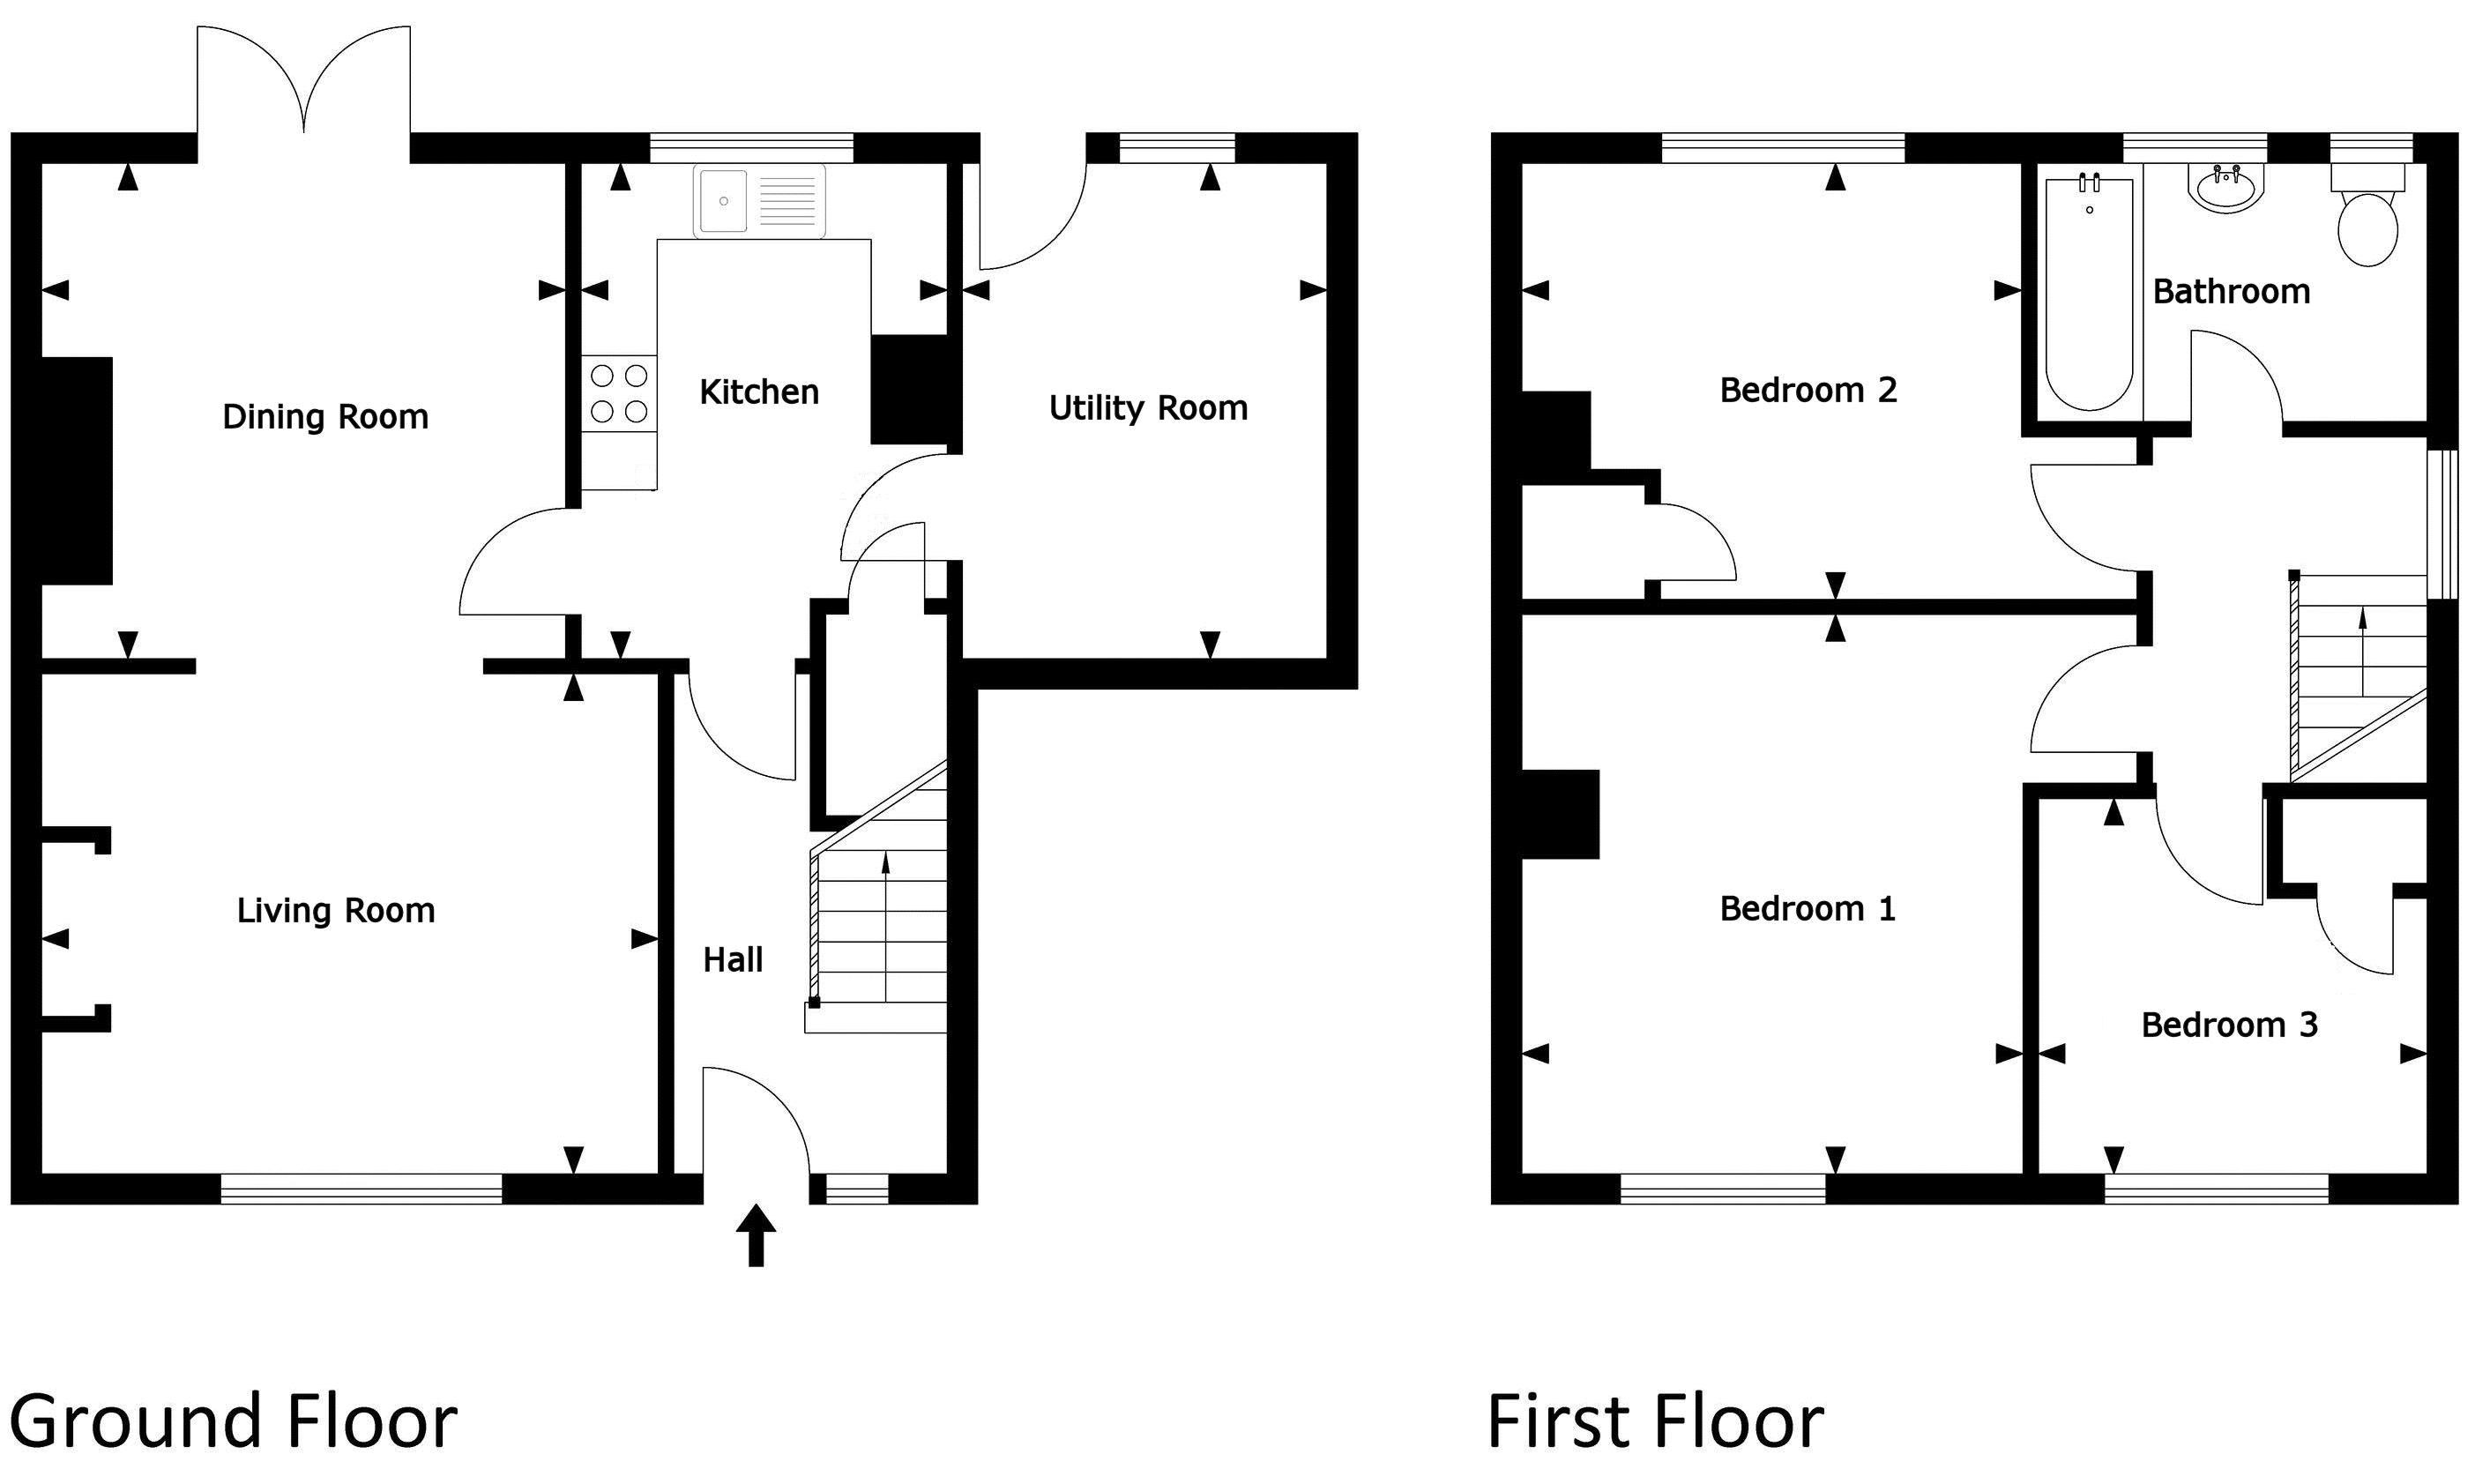 Existing house plan